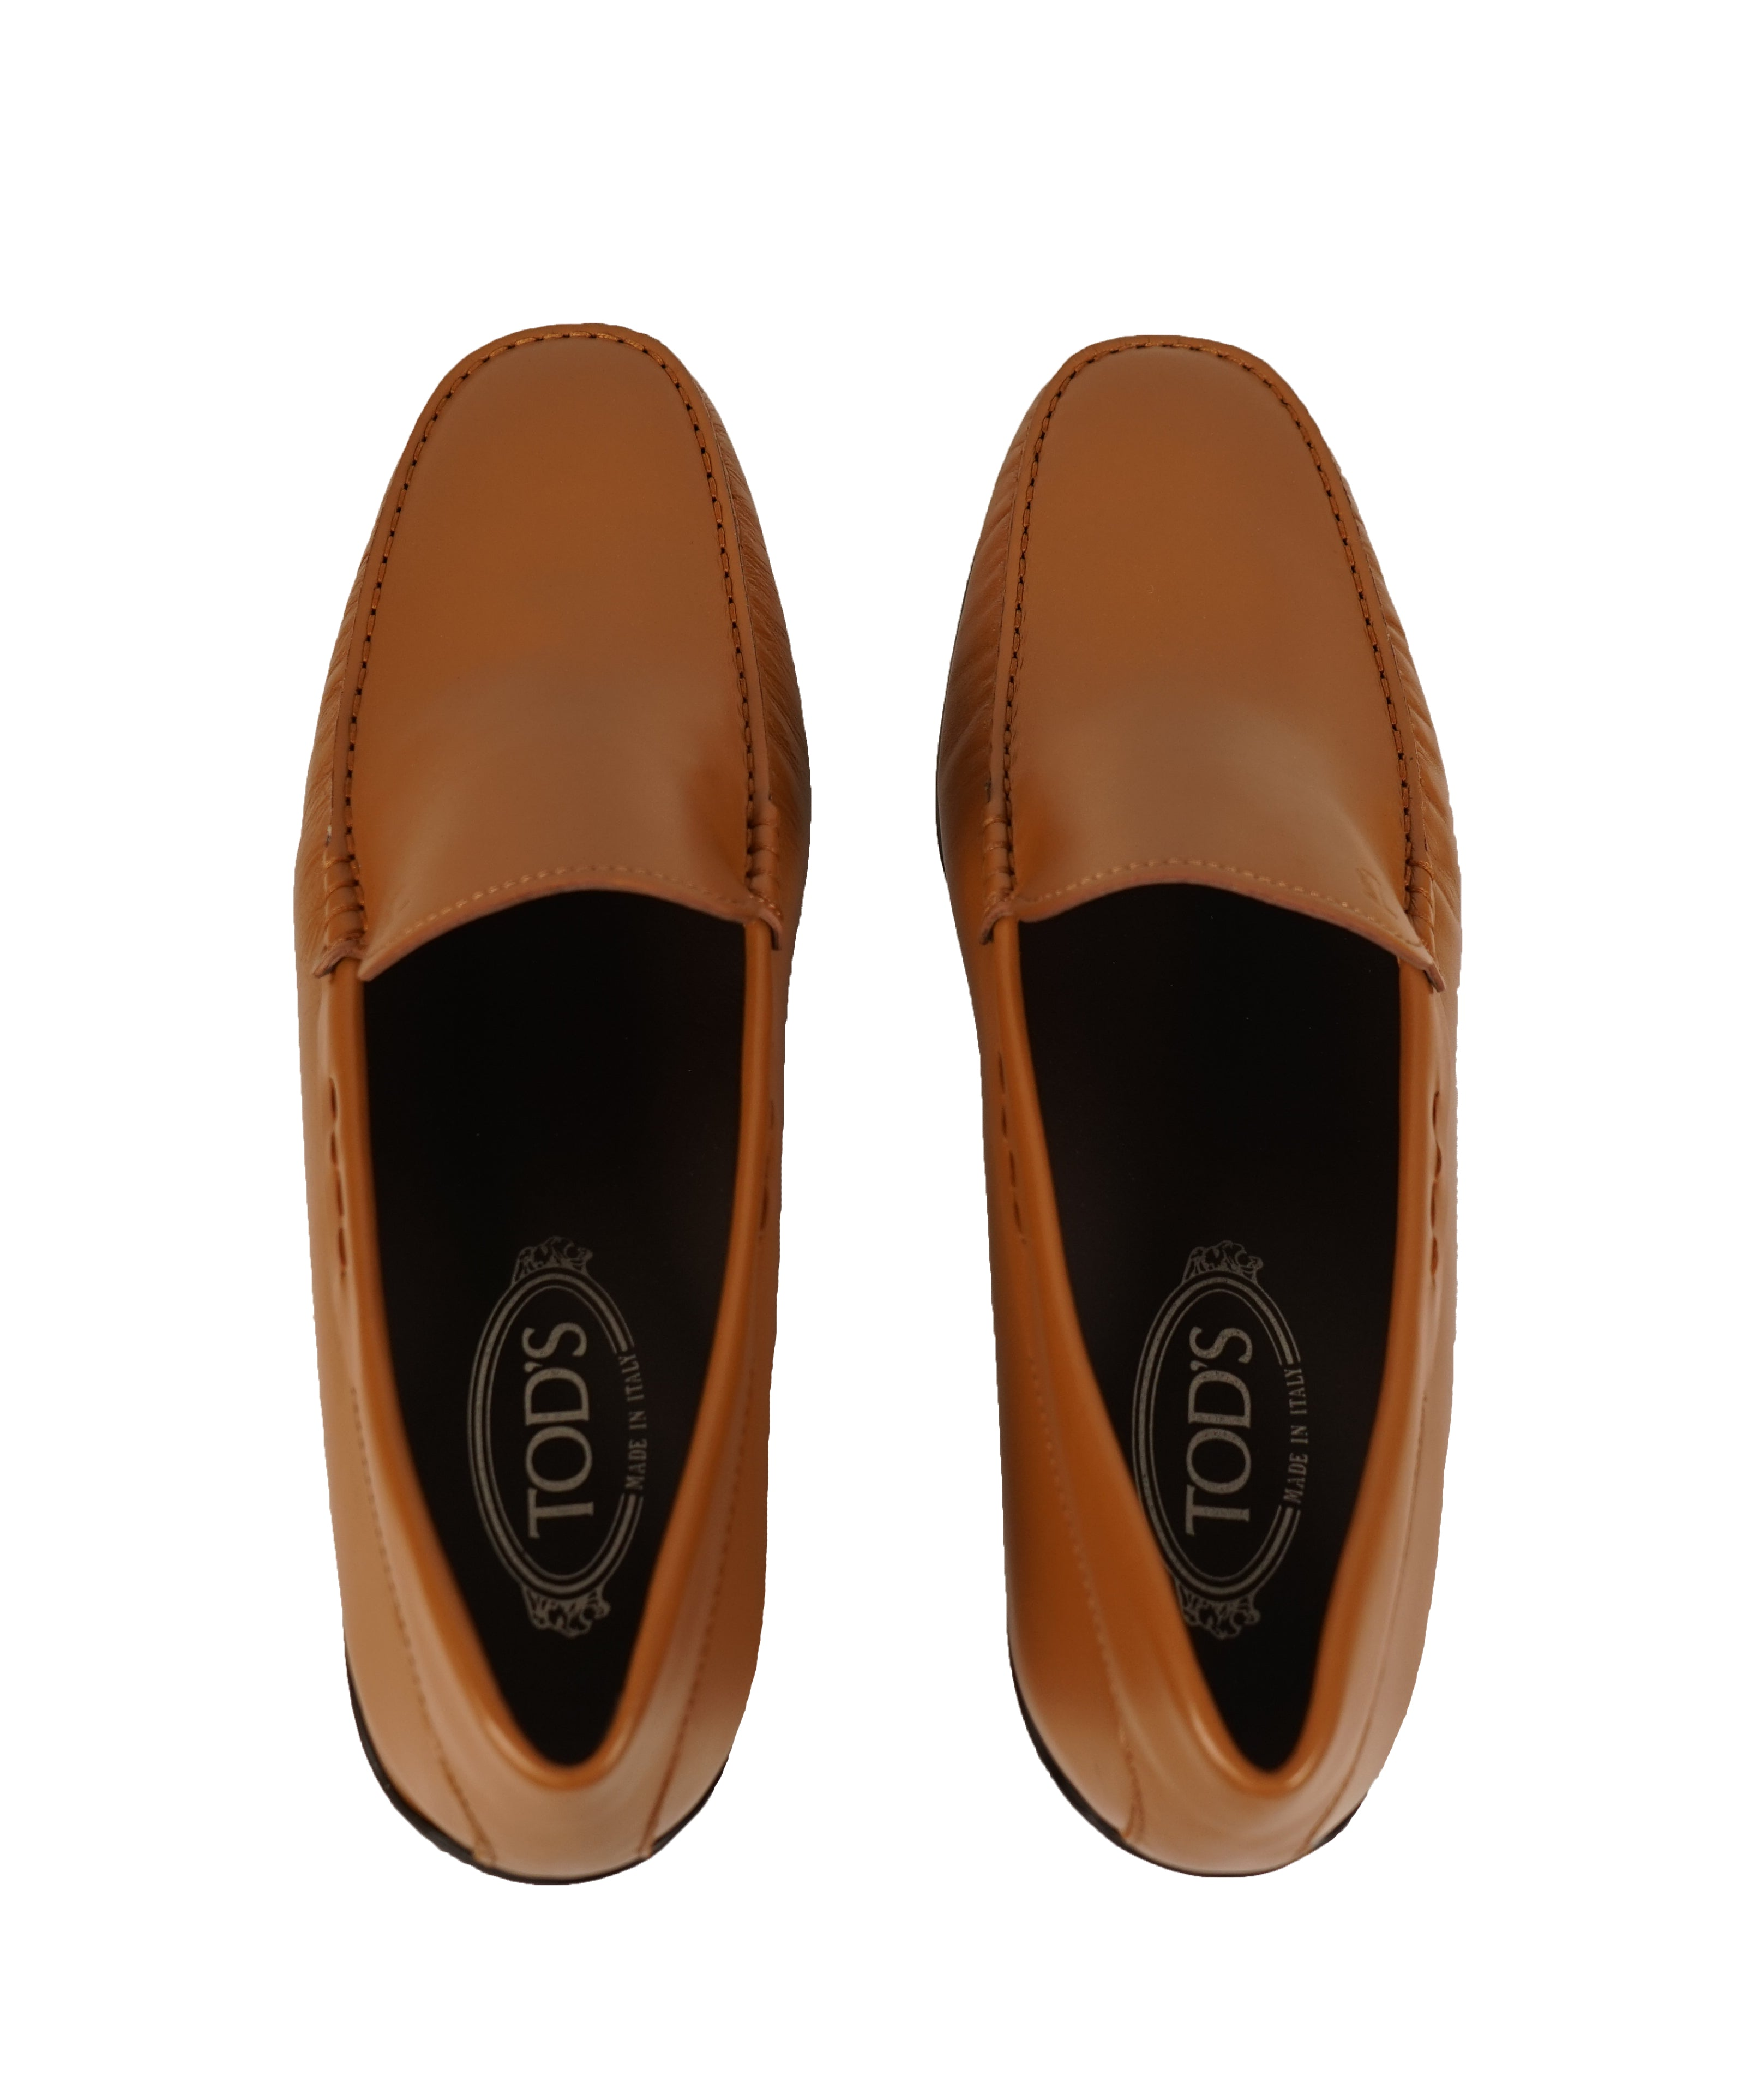 "TOD'S - Brown ""LOGO Gommini"" Vamp Engraved Italian Leather Loafers - 13"